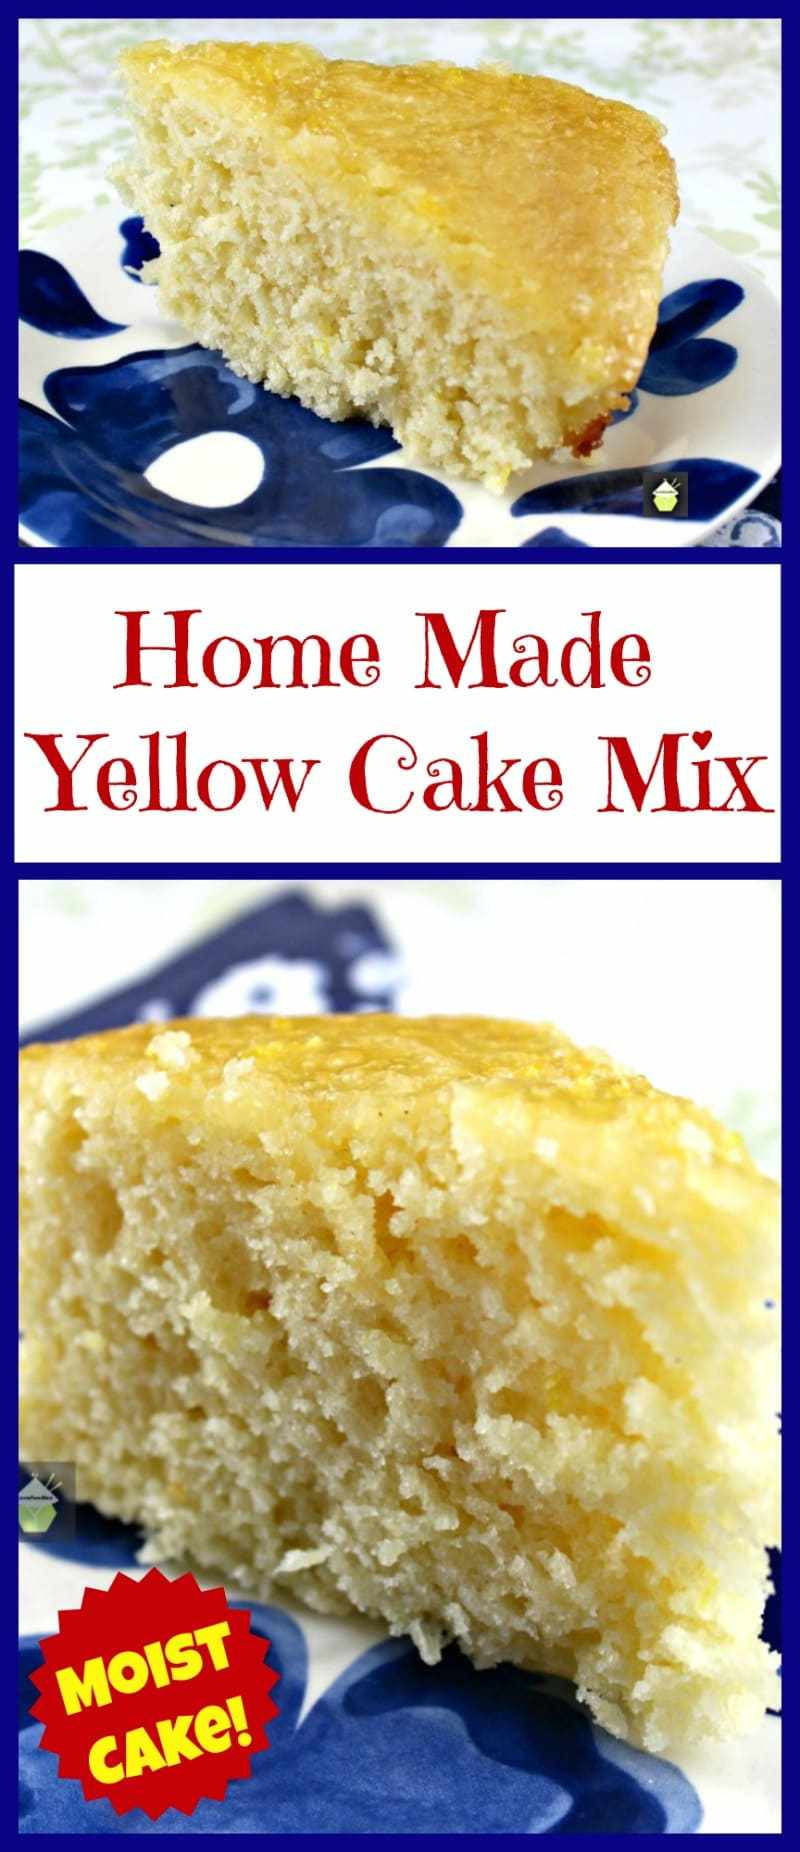 Recipes Using Yellow Cake Mix  Home Made Yellow Cake Mix – Lovefoo s